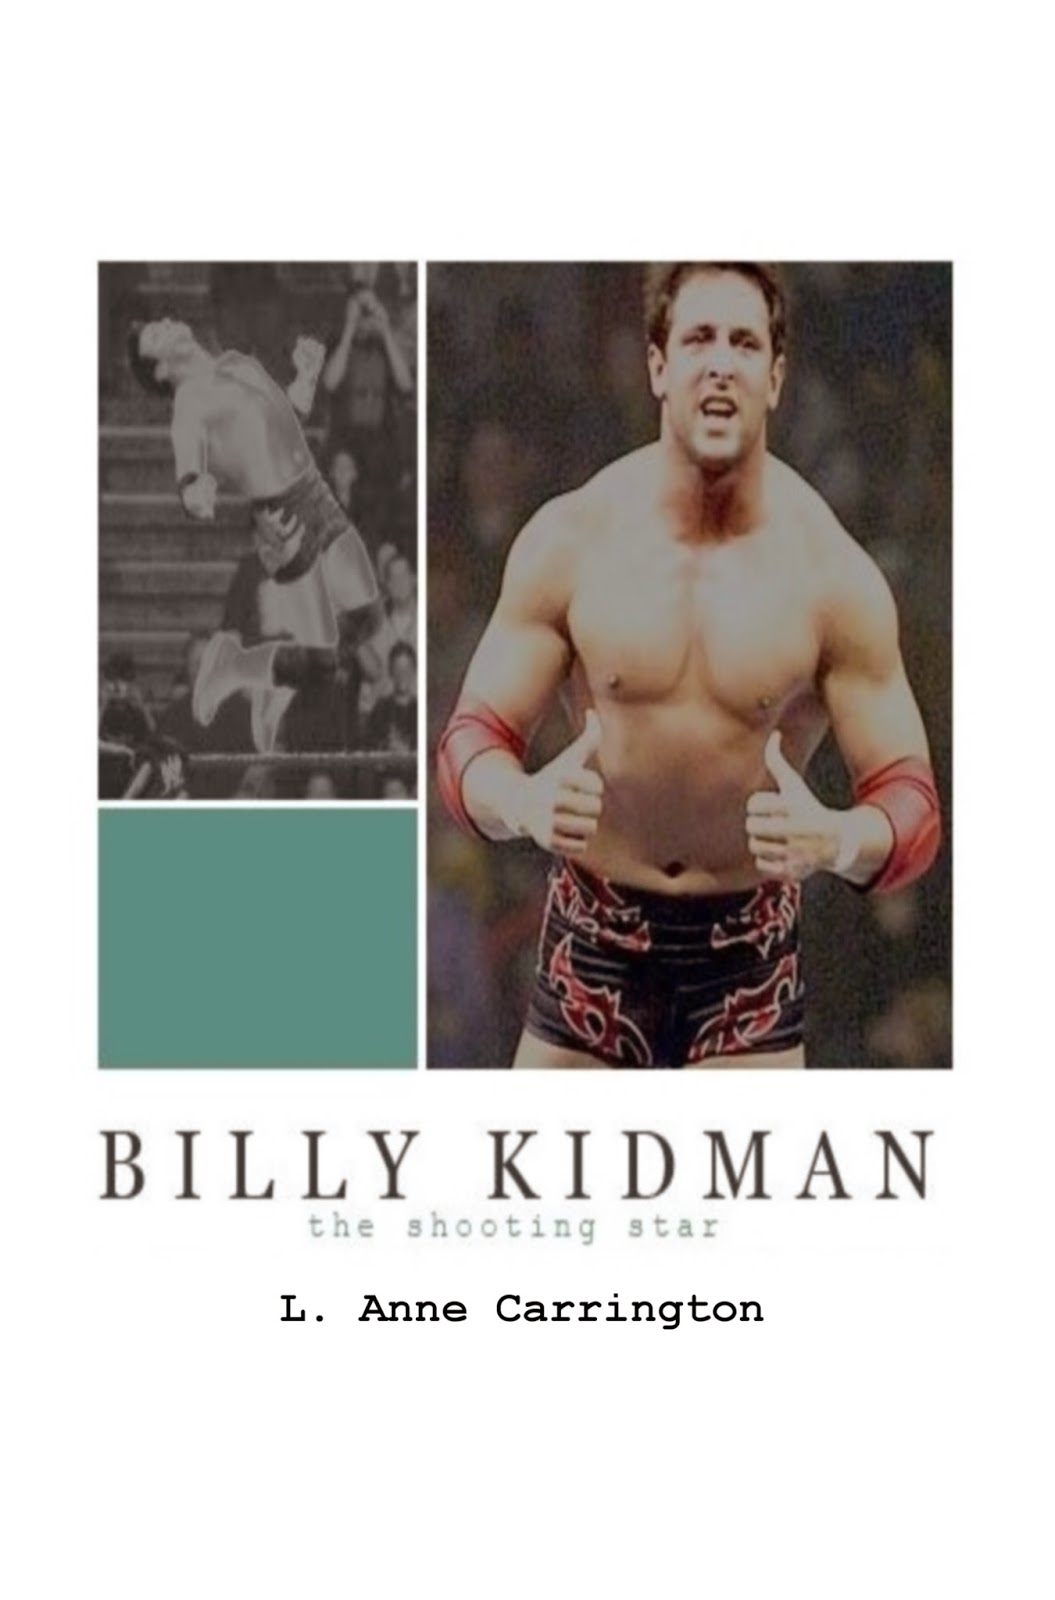 http://www.amazon.com/Billy-Kidman-Shooting-Anne-Carrington-ebook/dp/B00IPW616C/ref=la_B0055STQL6_1_1?s=books&ie=UTF8&qid=1399666324&sr=1-1